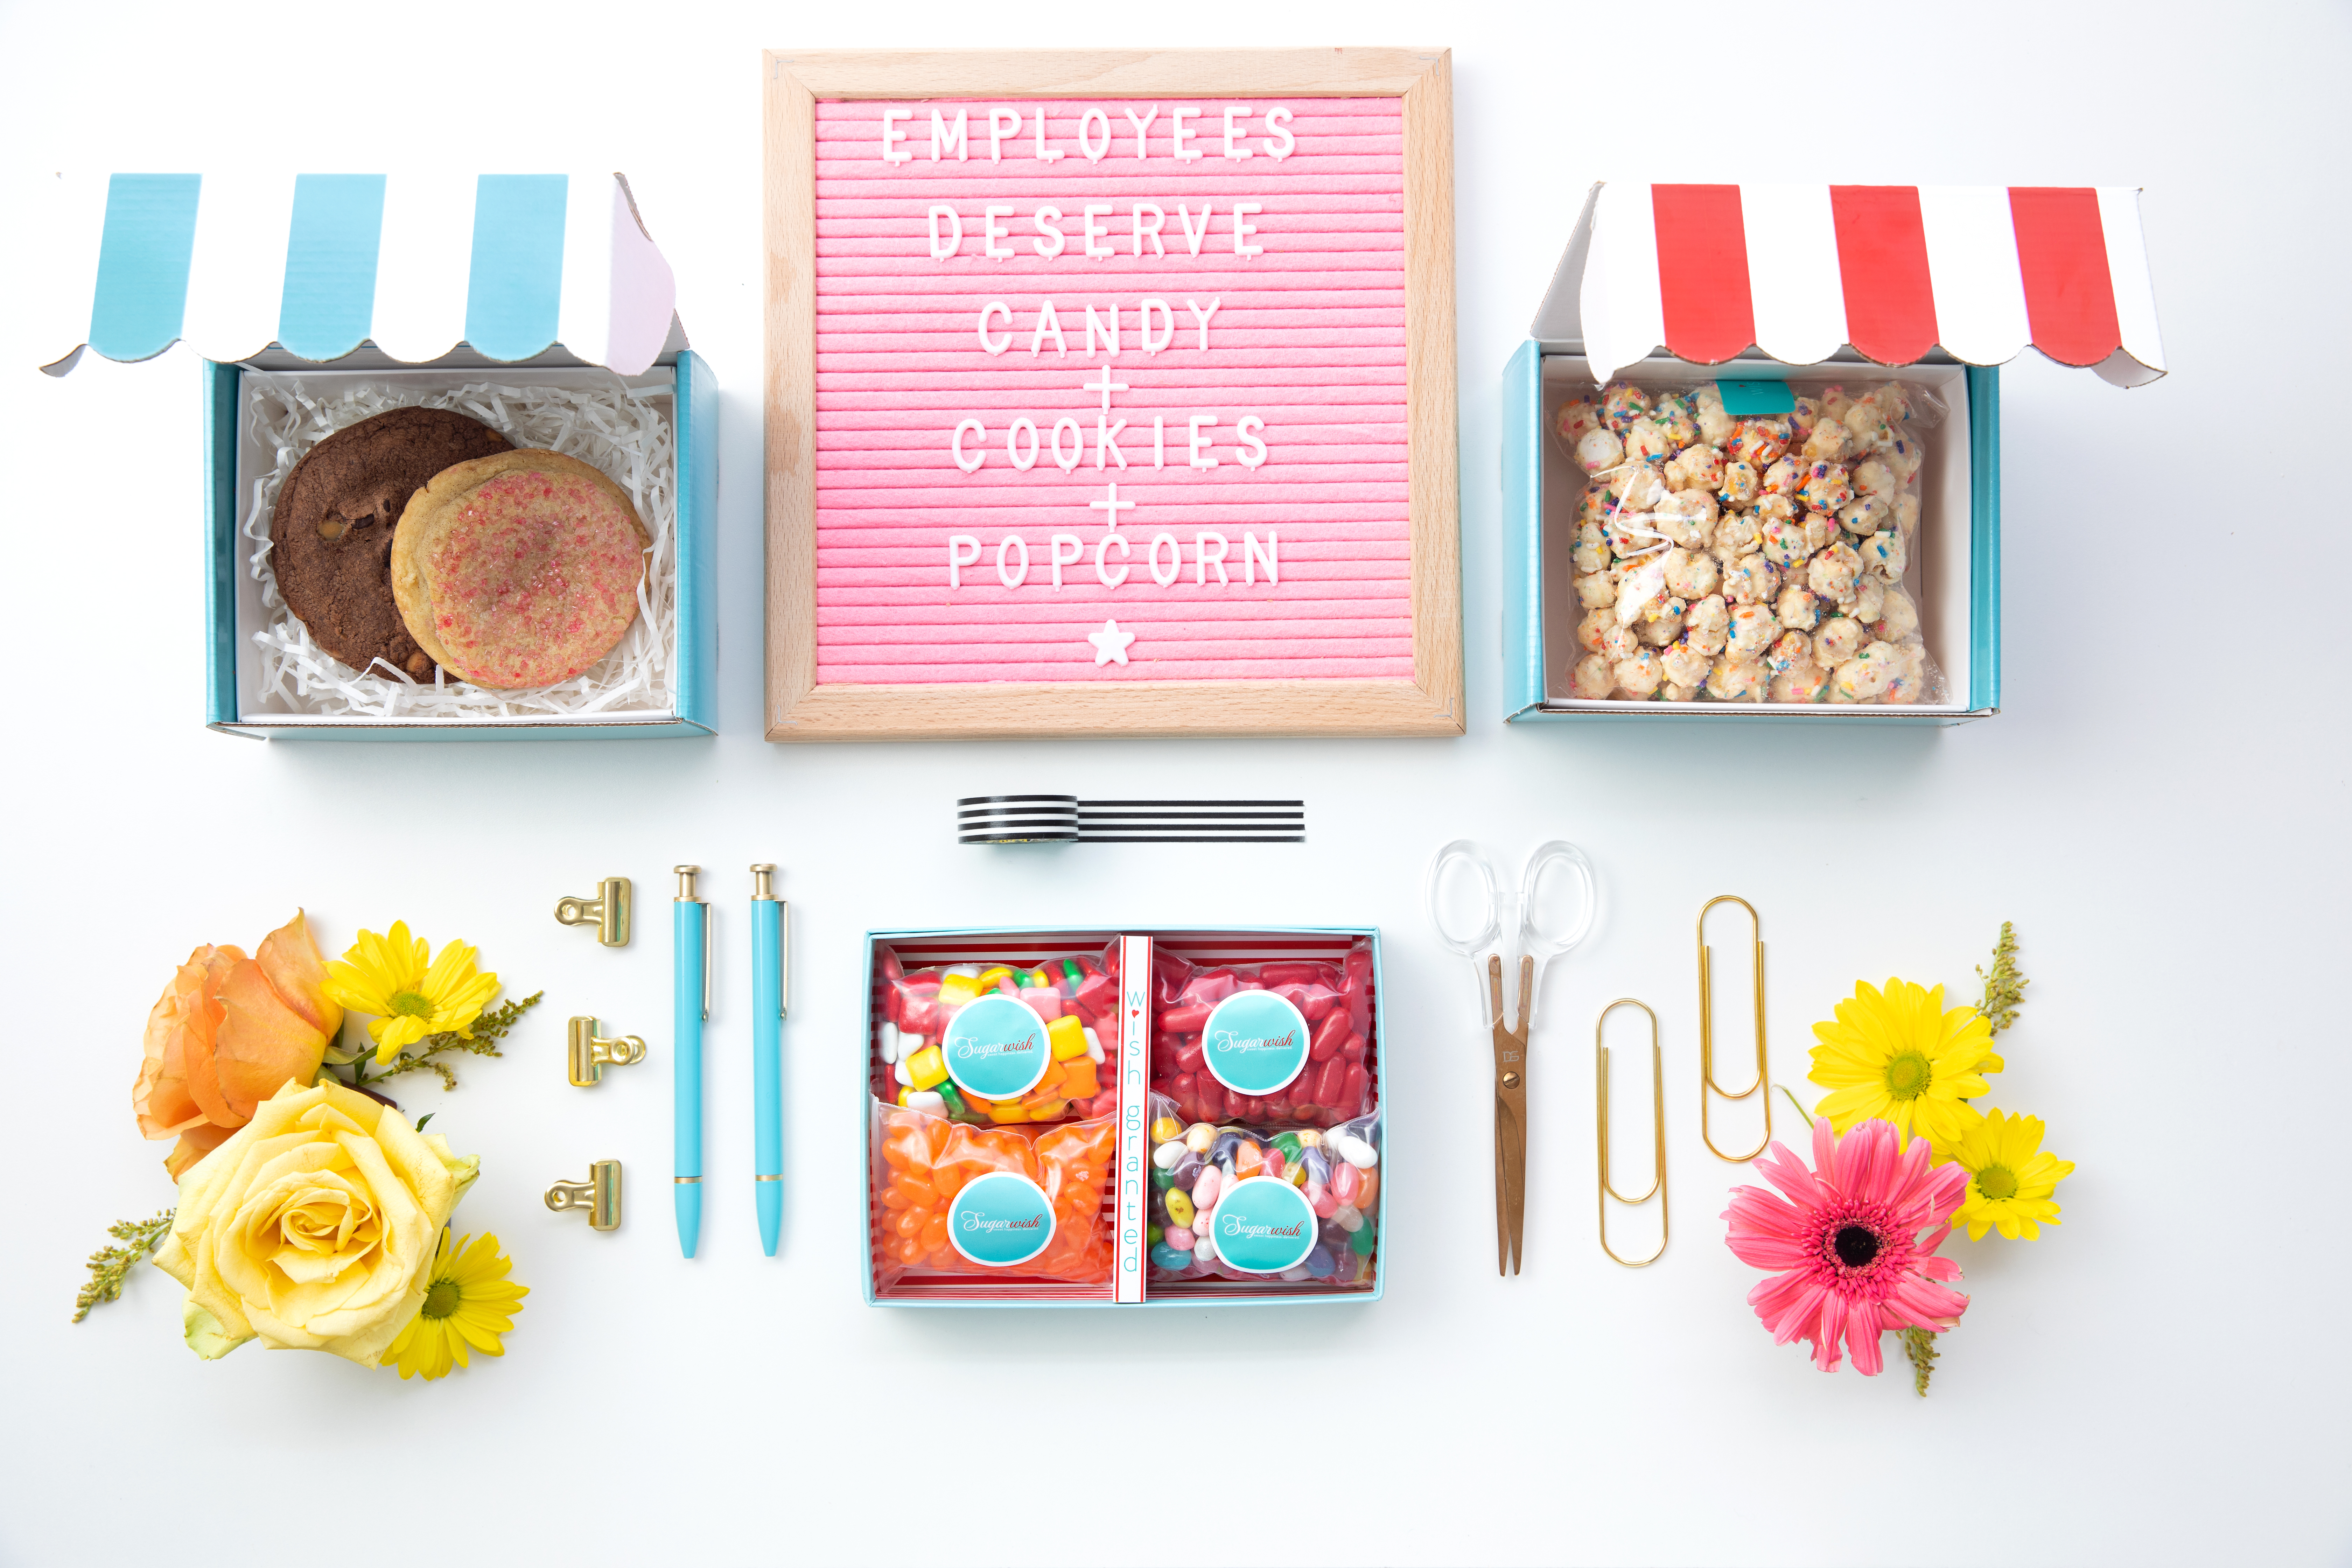 Sugarwish Gifts | Employee Appreciation Day 2021